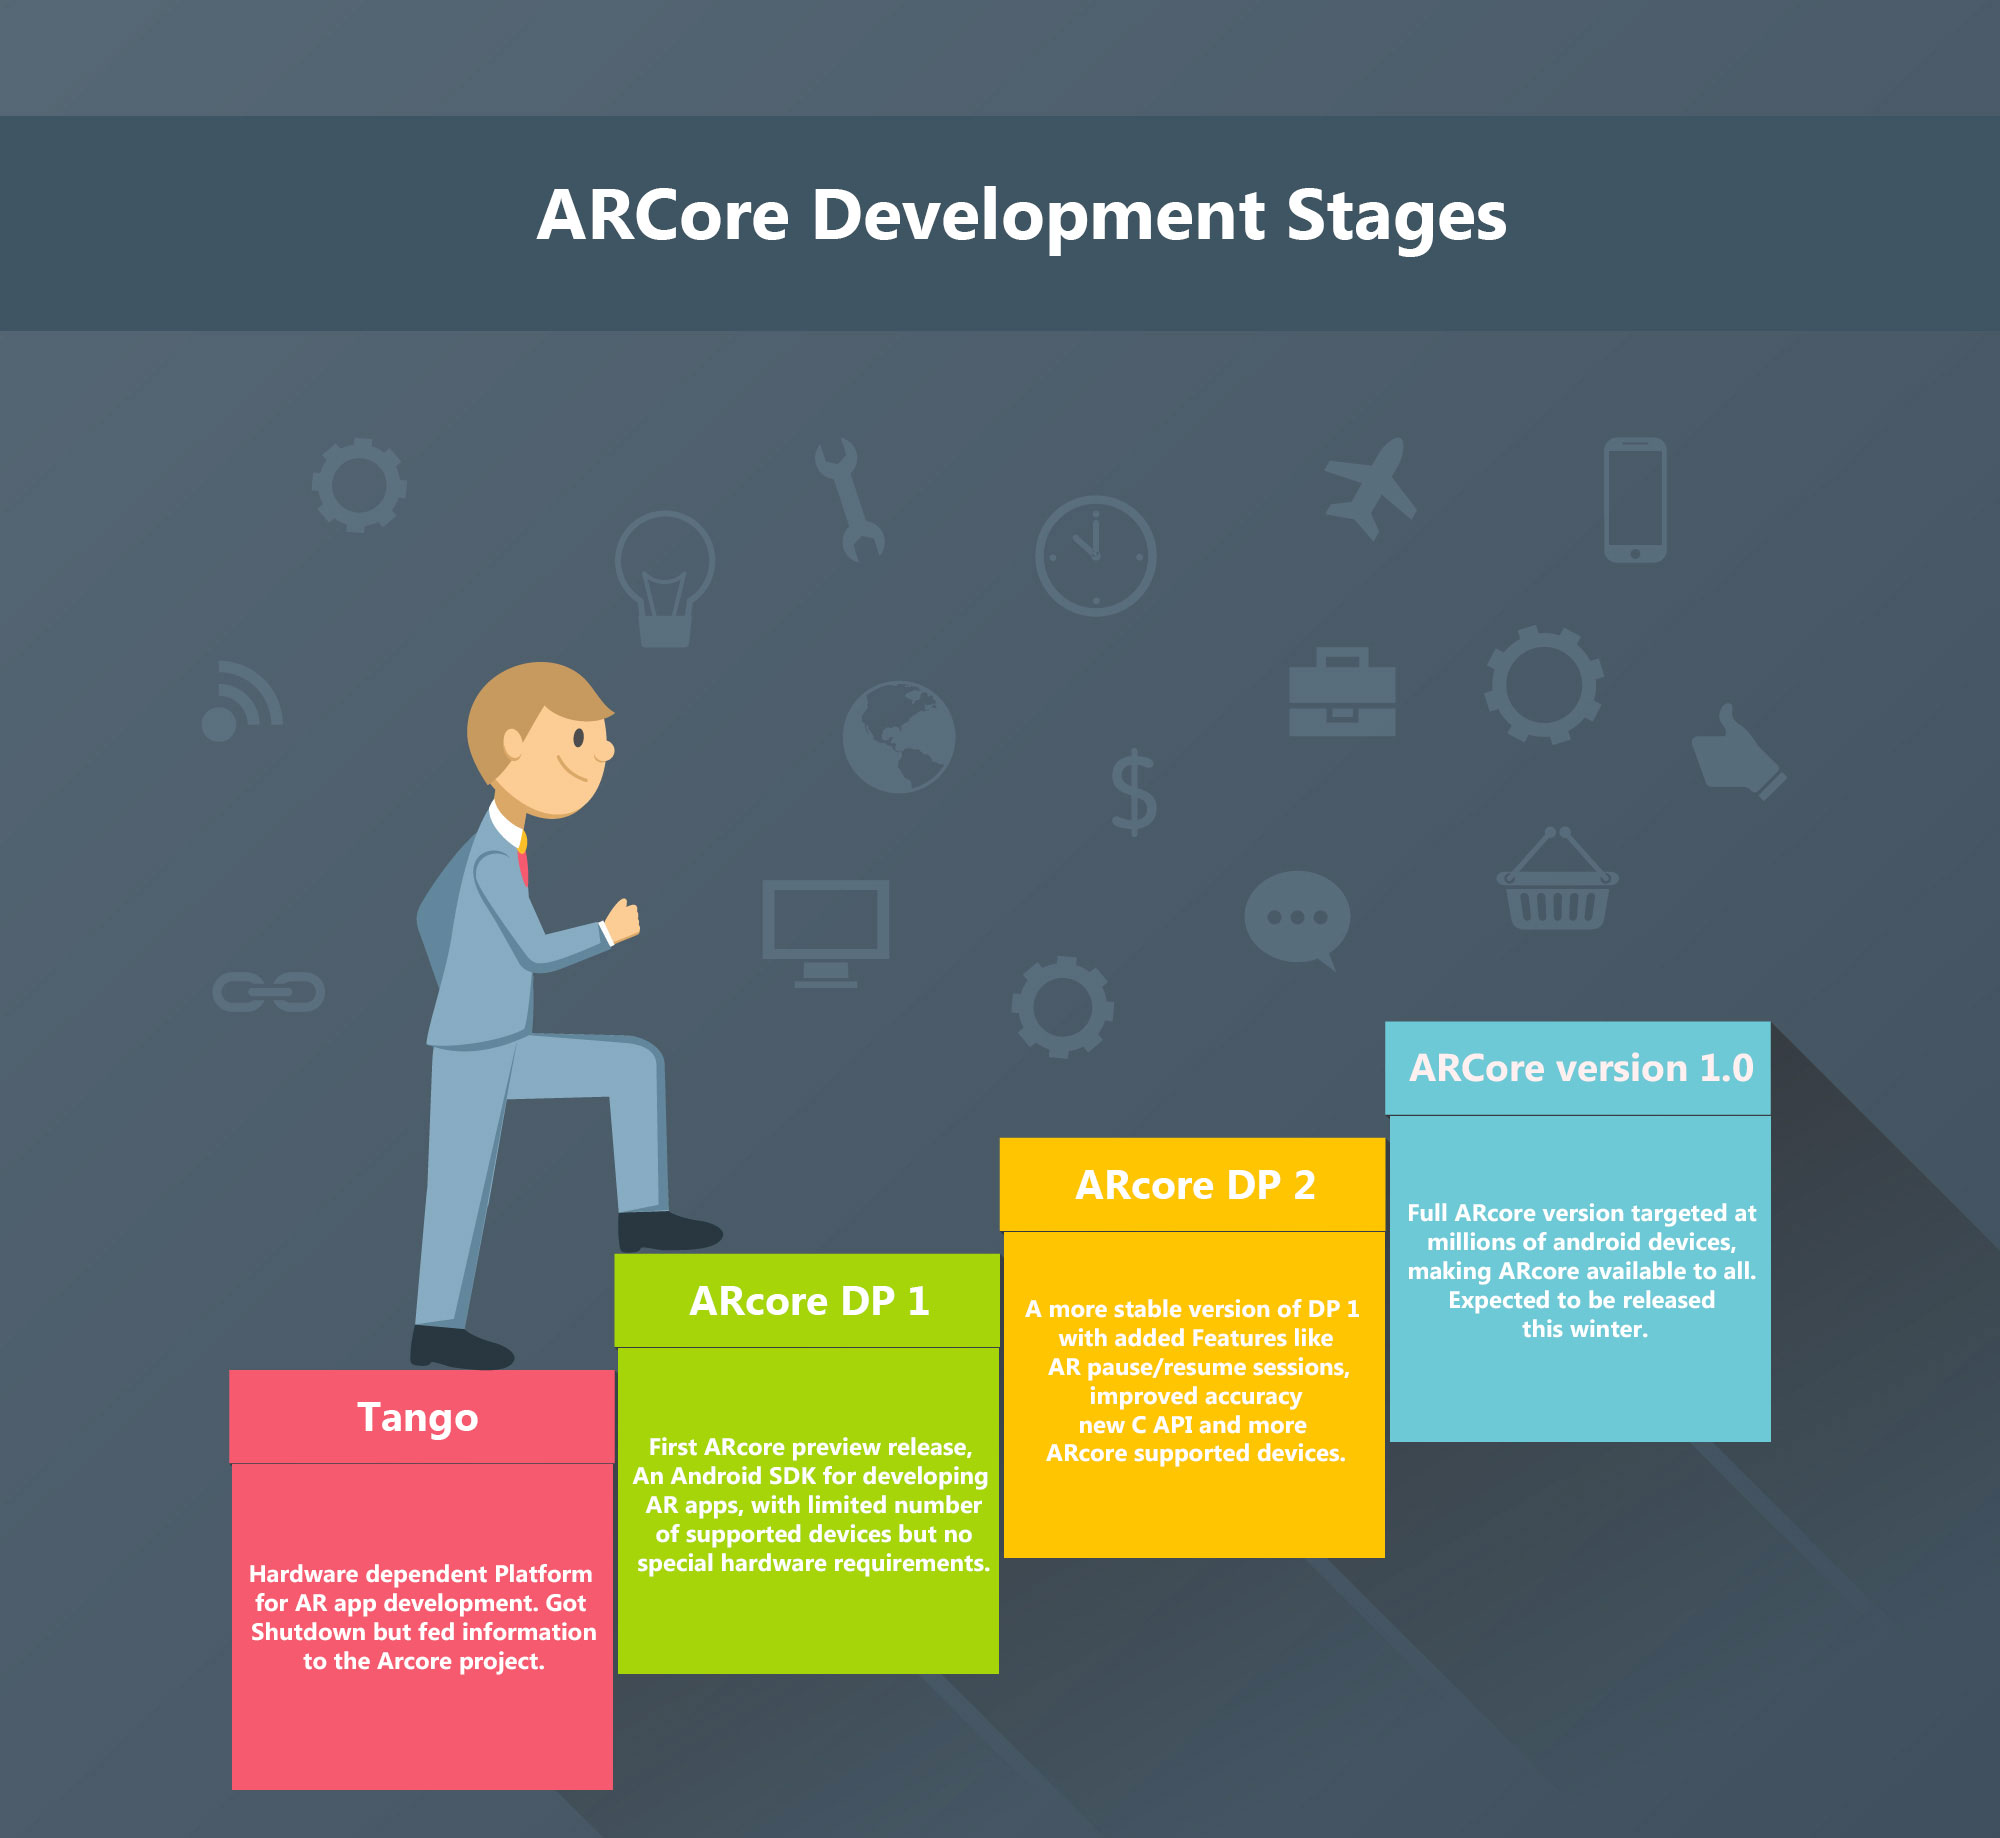 arcore-development-stages